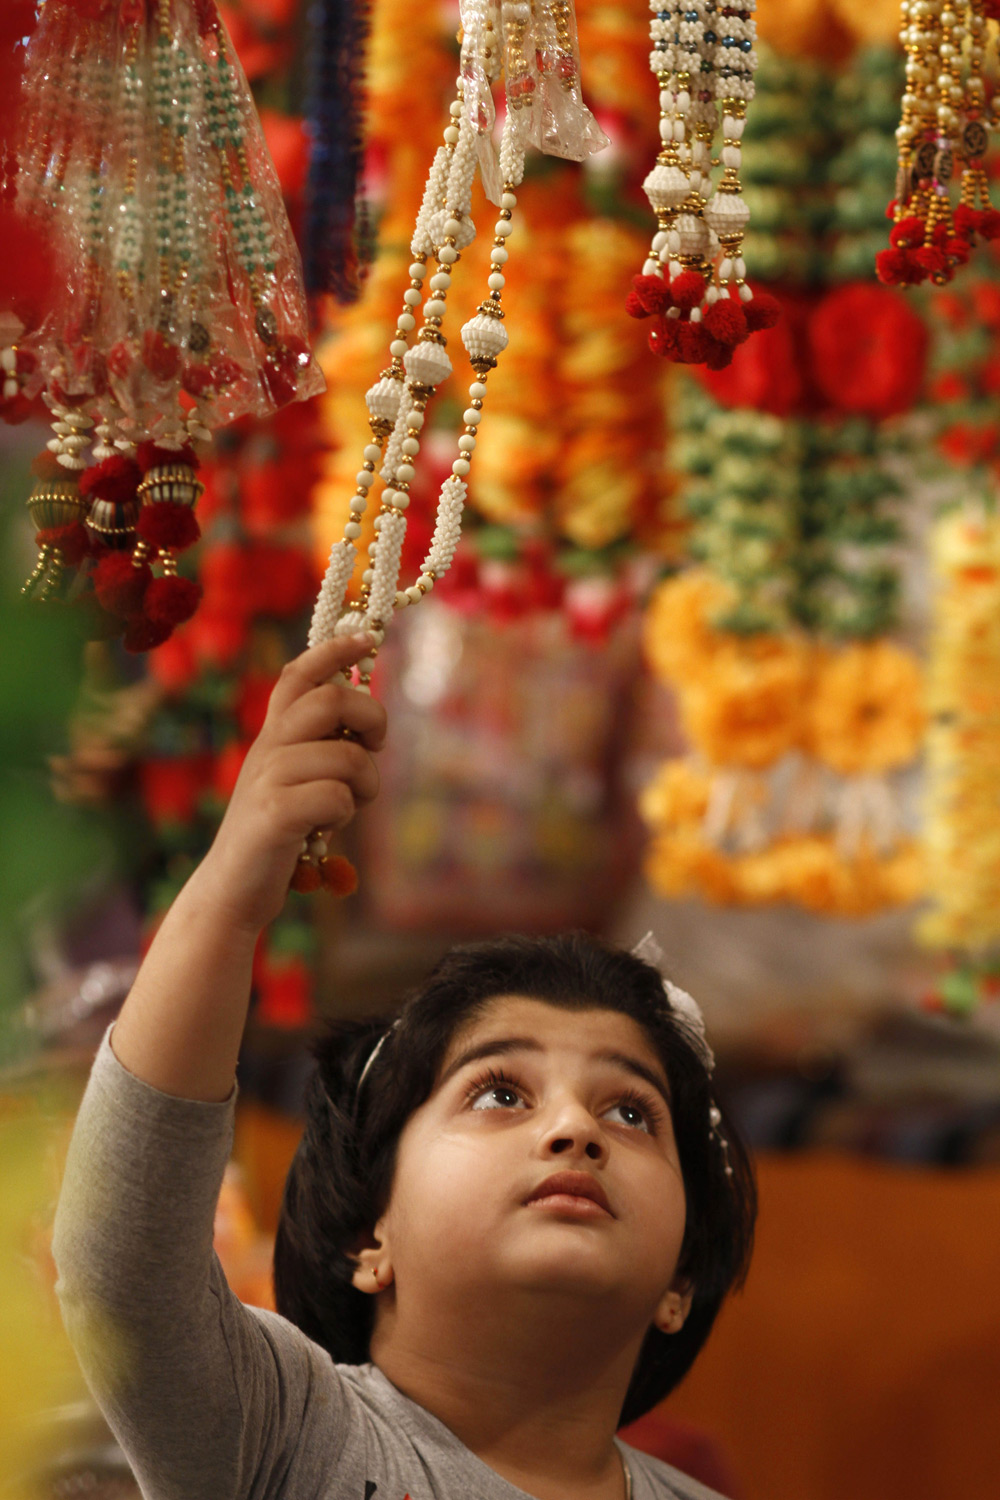 A girl touches an artificial garland on display at a shop ahead of Diwali in Allahabad.